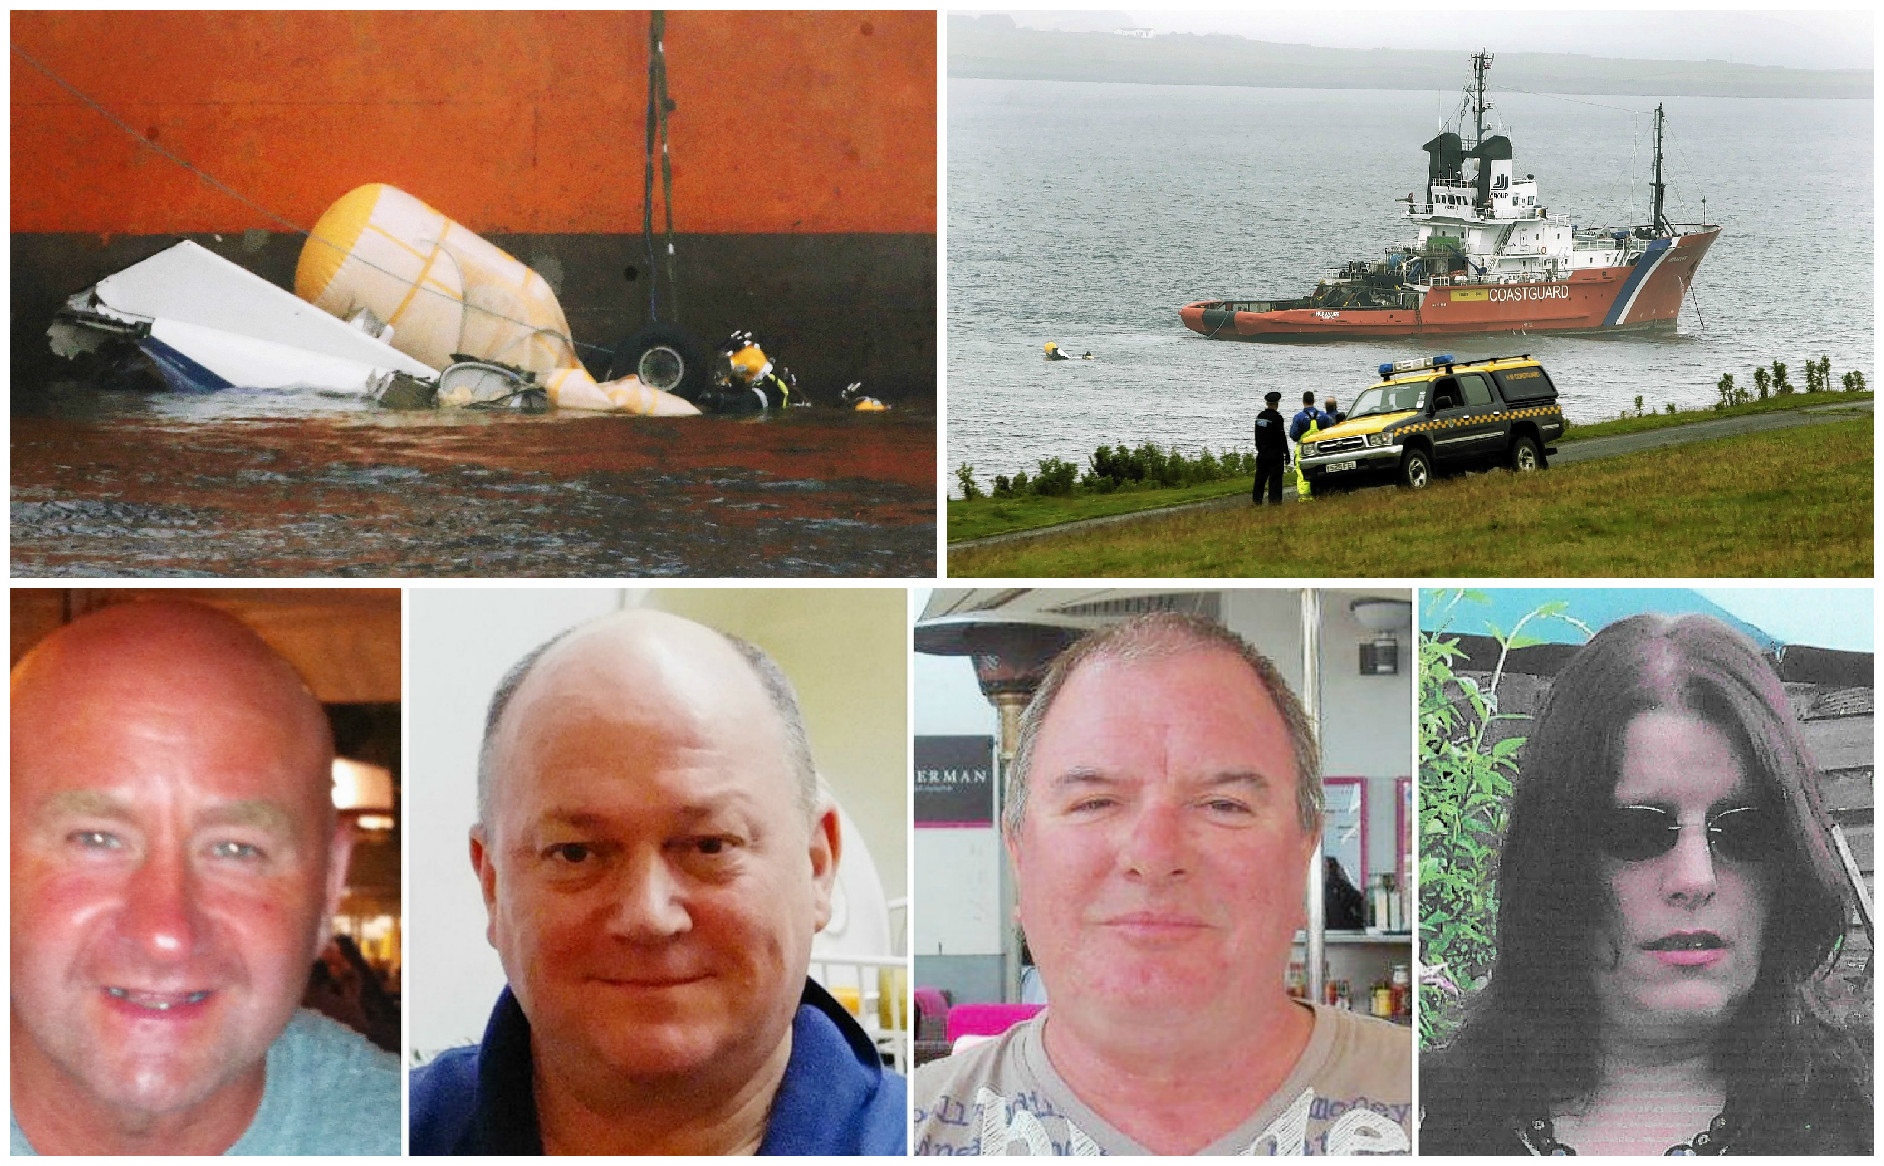 Four died in the 2013 North Sea helicopter crash